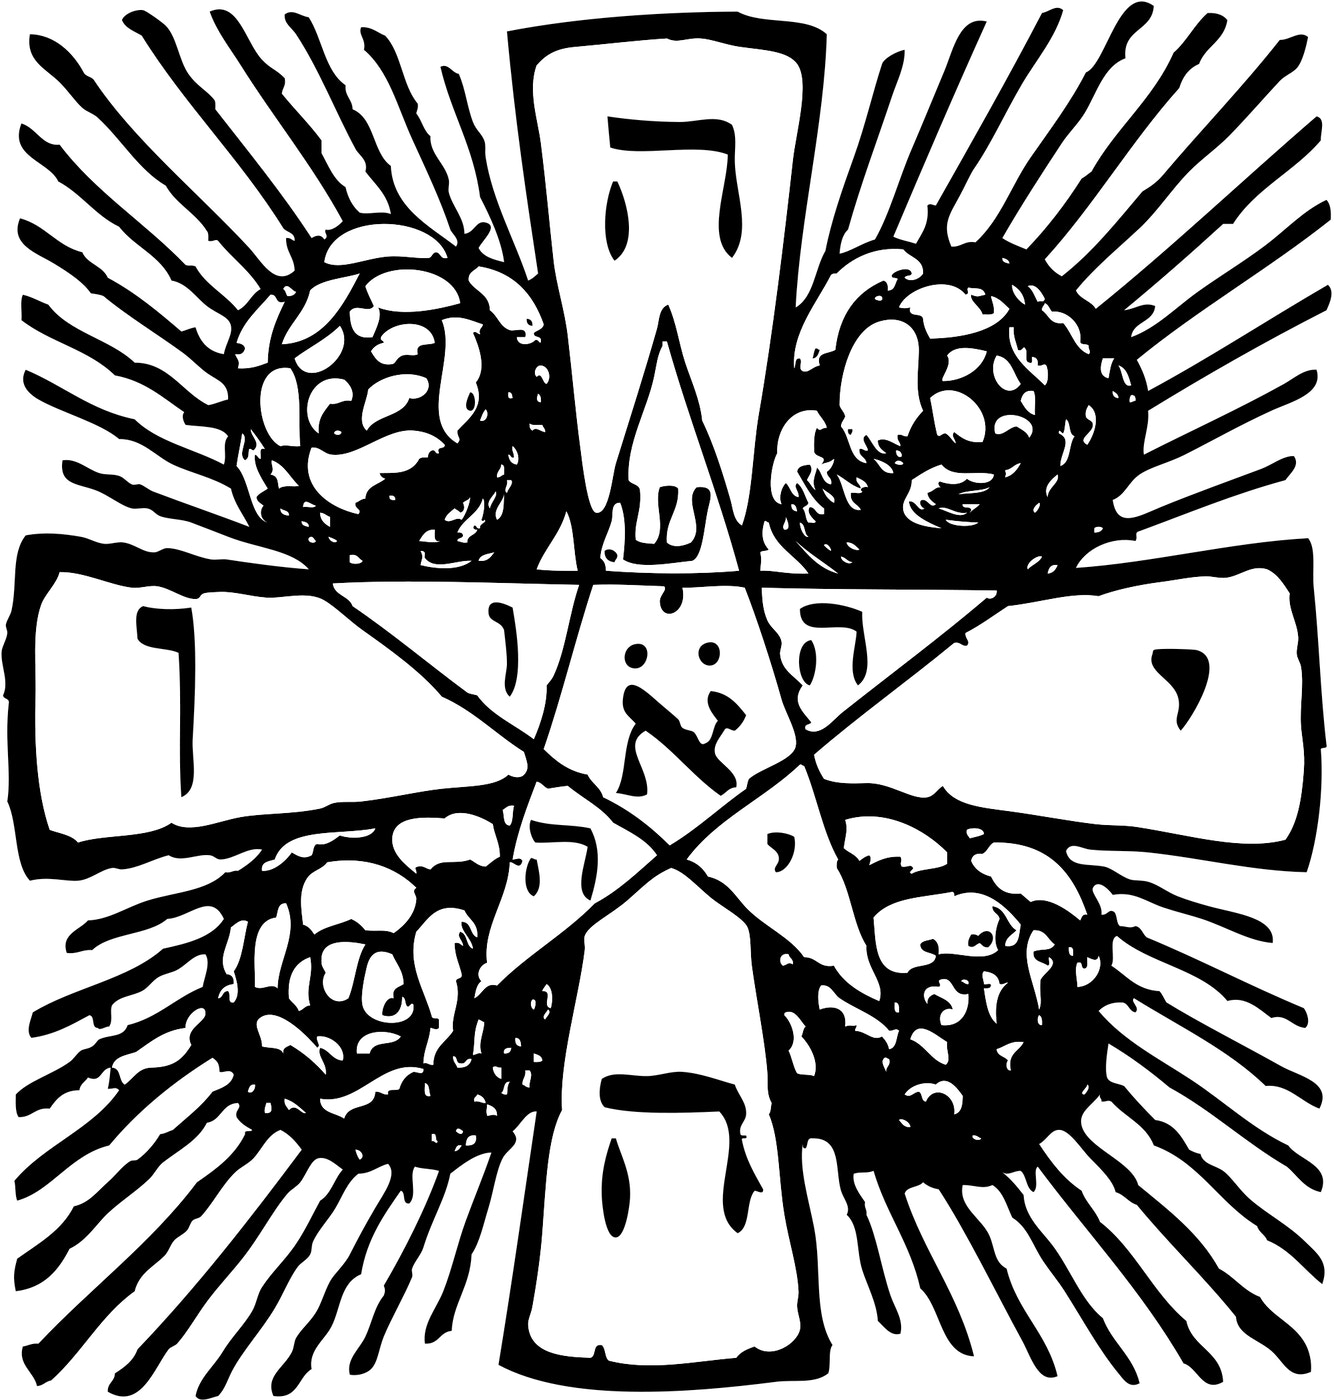 Rosy Cross symbol